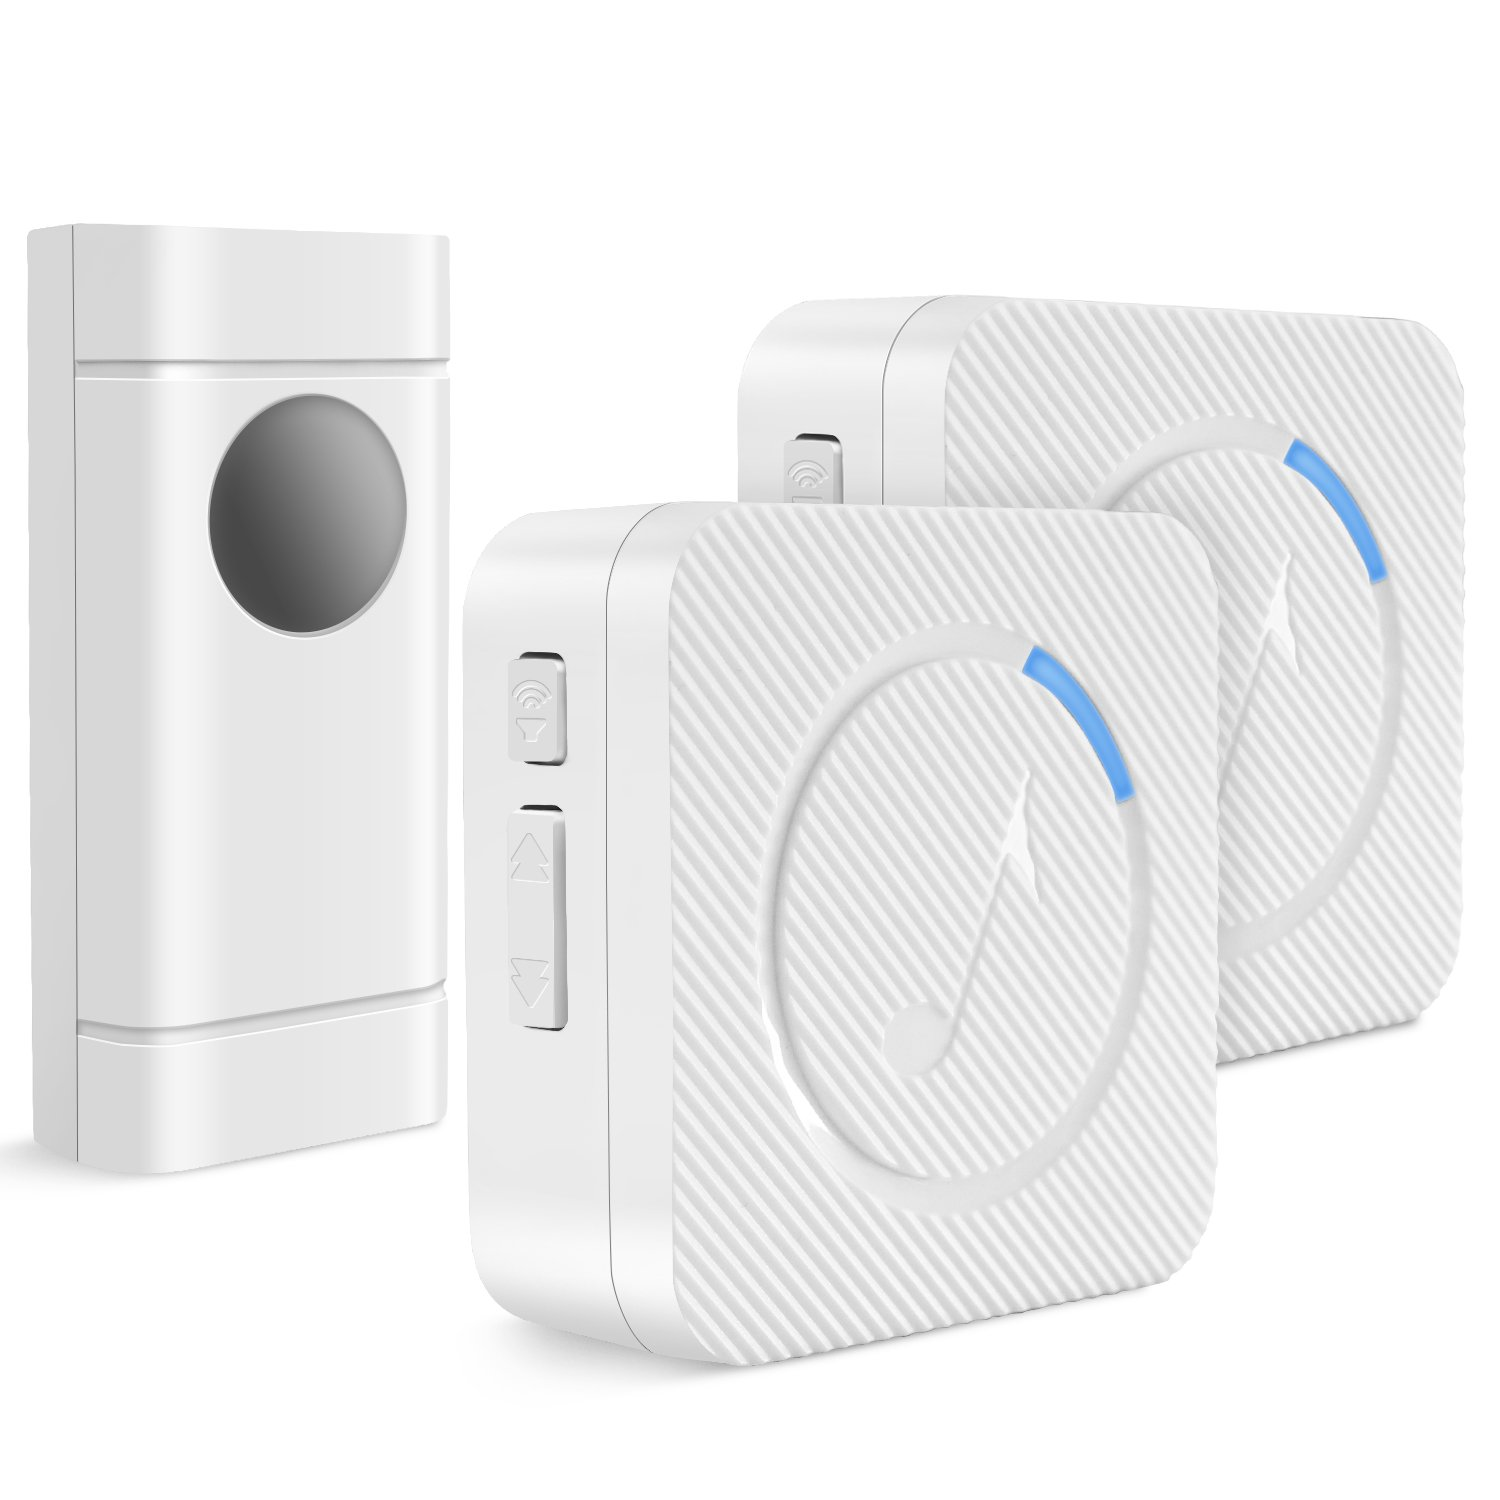 Wireless Doorbell,PEMOTech Waterproof Door Chime Kit Operating at Over 1000ft,Door Bell with 2 Plug-in Receivers,LED Indicators,52 Melodies, Memory Function,Easy to Install for Home and Office,White